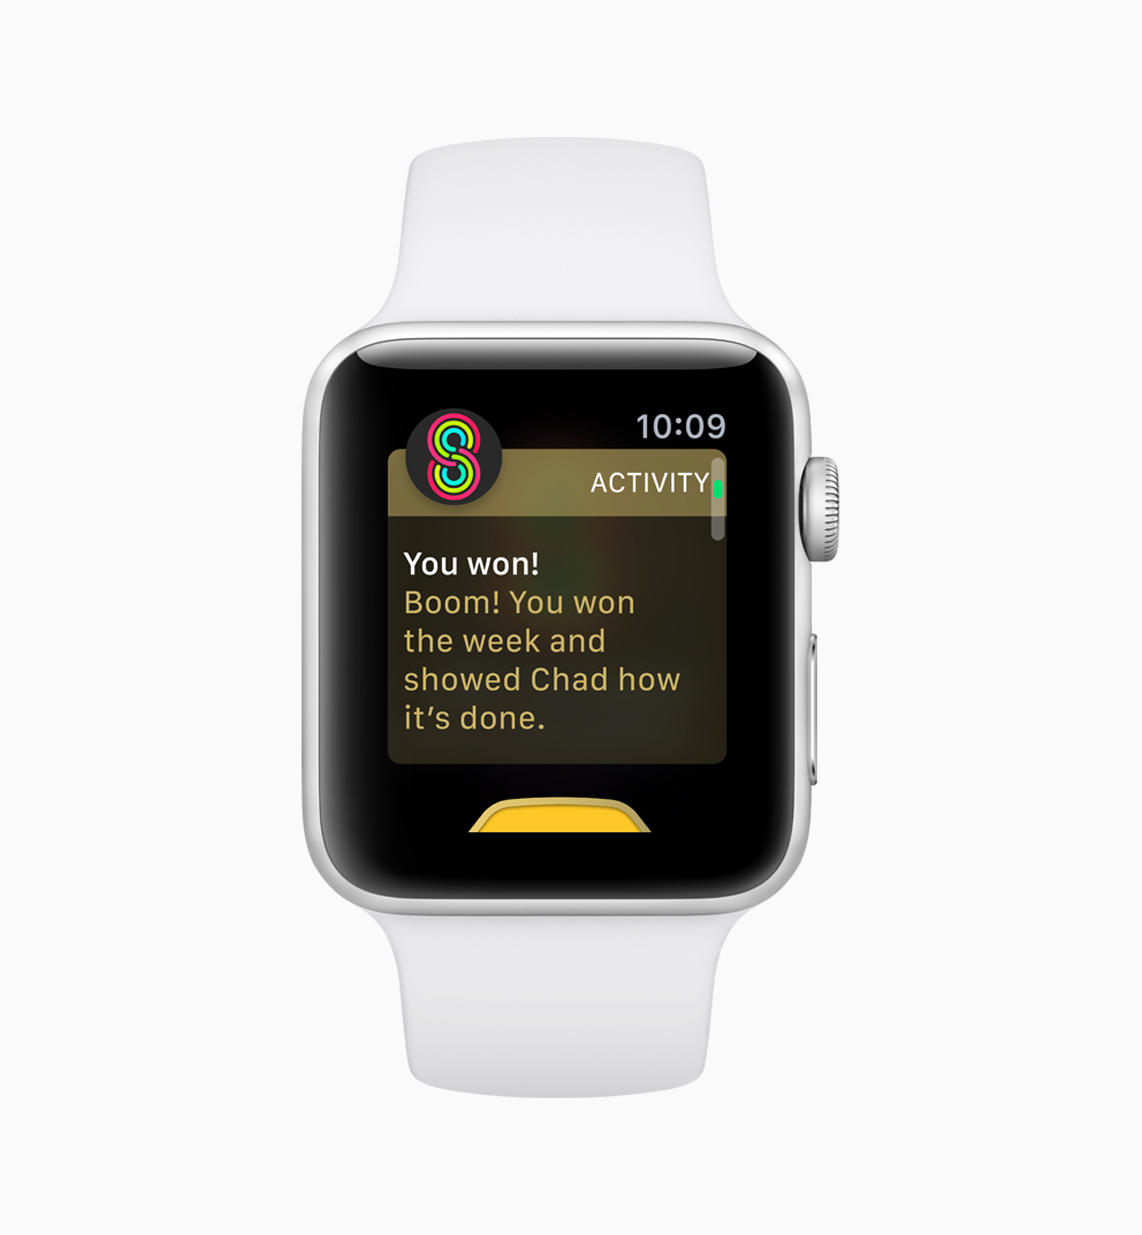 apple-watchos-5-competitions-03-screen-06042018